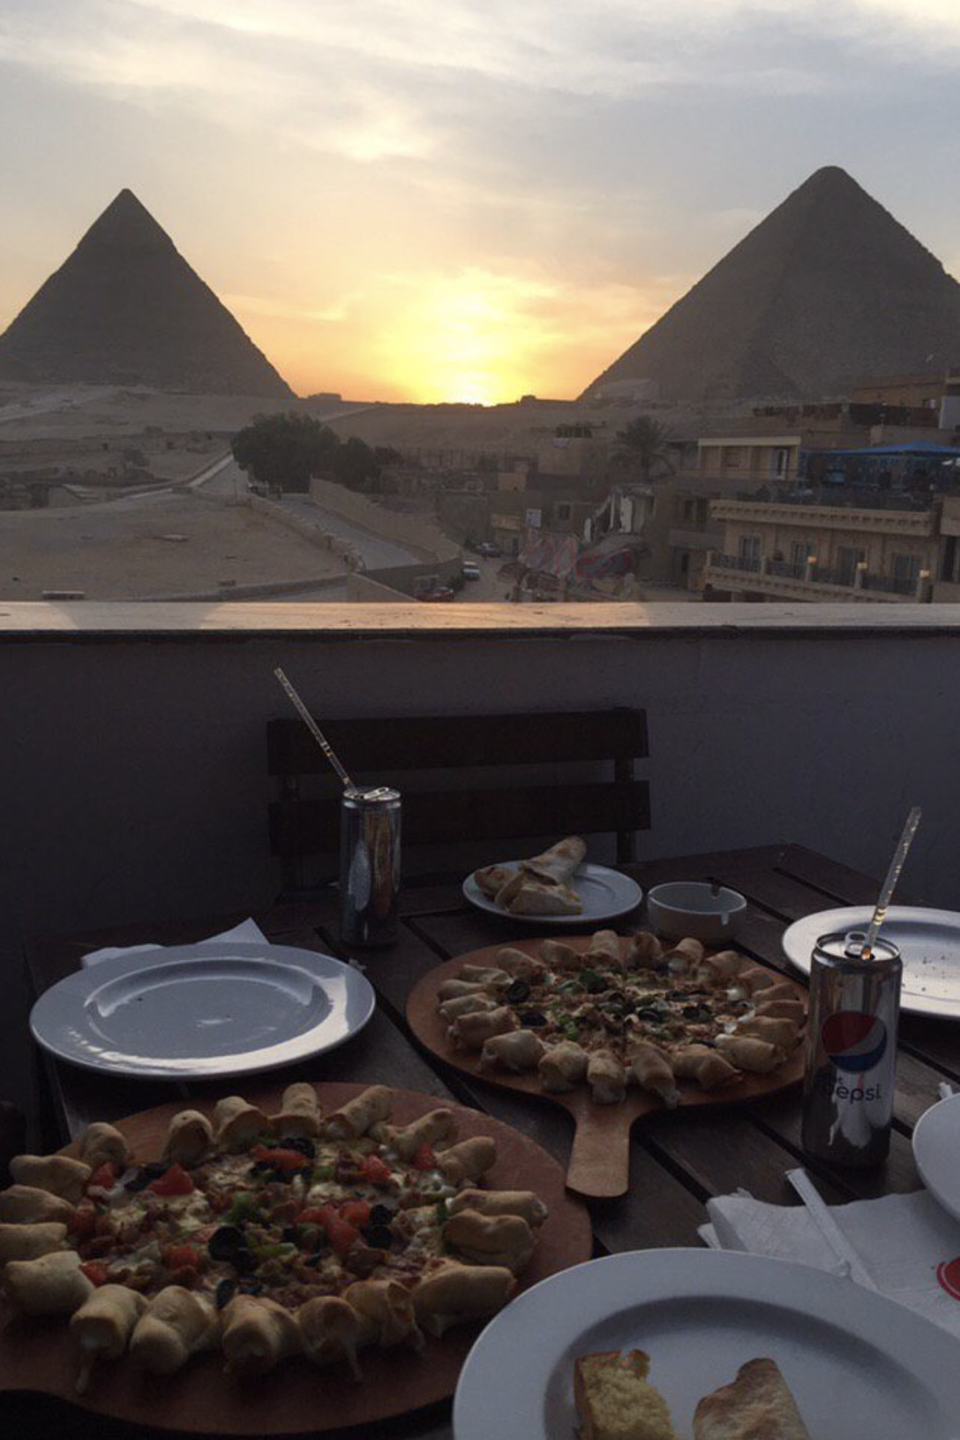 """<p>This Pizza Hut definitely reigns supreme for having the best view. The location sits right in Giza and features a rooftop view of <a href=""""https://www.redbookmag.com/life/g32303304/facts-about-pyramids/"""" rel=""""nofollow noopener"""" target=""""_blank"""" data-ylk=""""slk:the Great Pyramids"""" class=""""link rapid-noclick-resp"""">the Great Pyramids</a>. Yeah, NBD.</p>"""